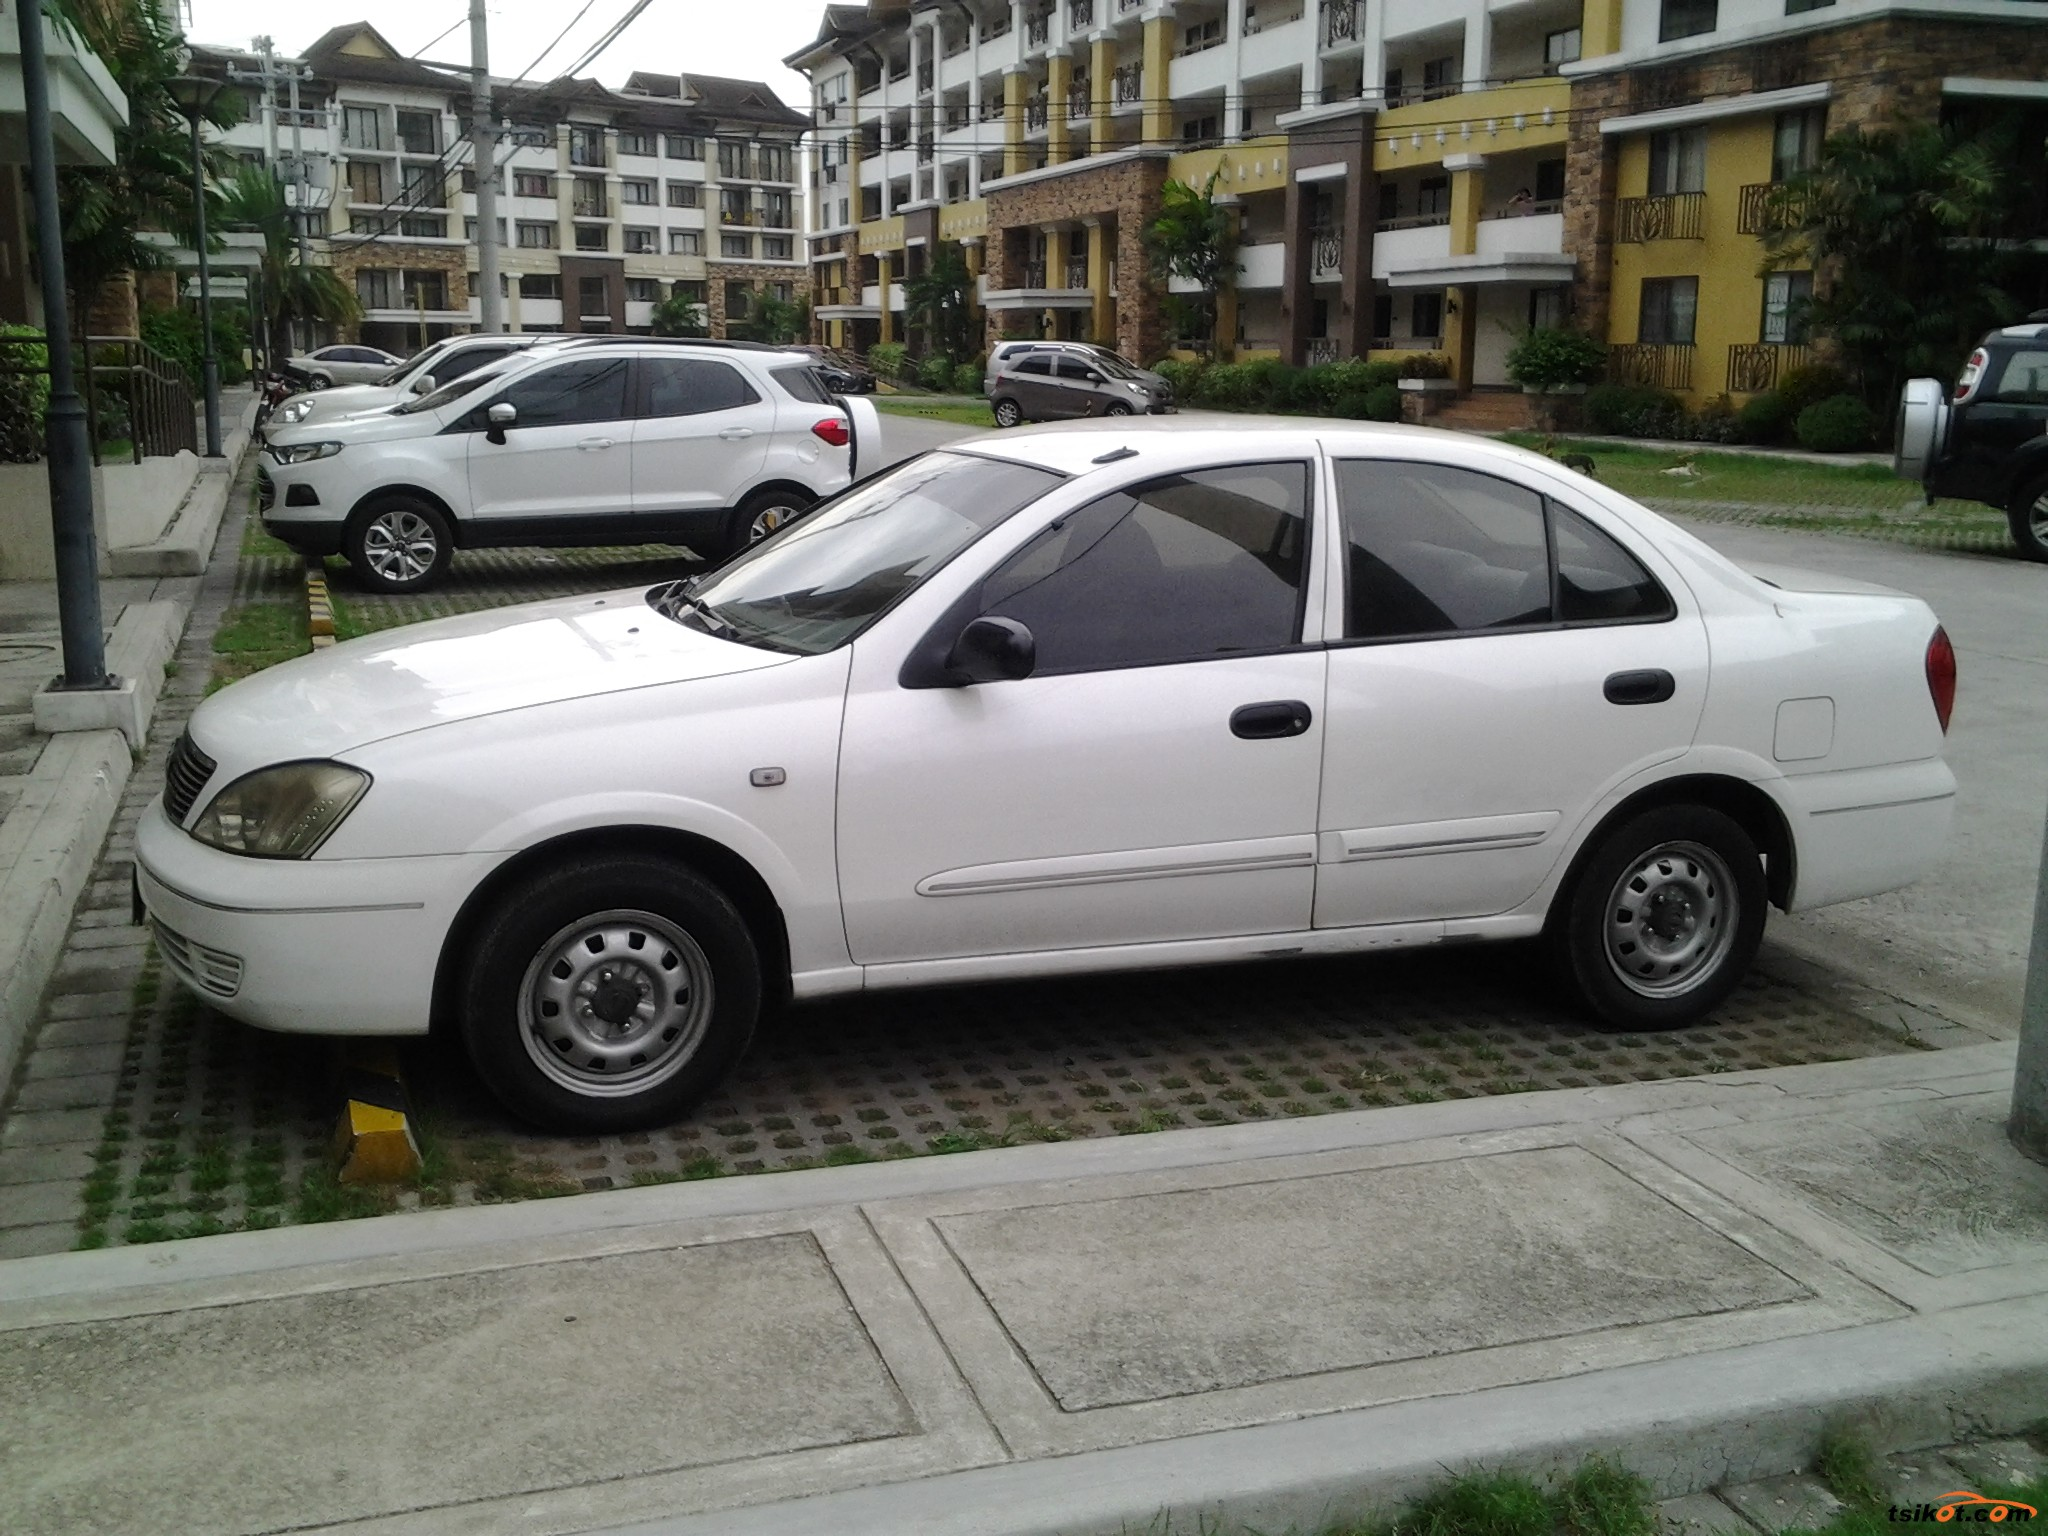 nissan sentra 2011 car for sale metro manila philippines. Black Bedroom Furniture Sets. Home Design Ideas